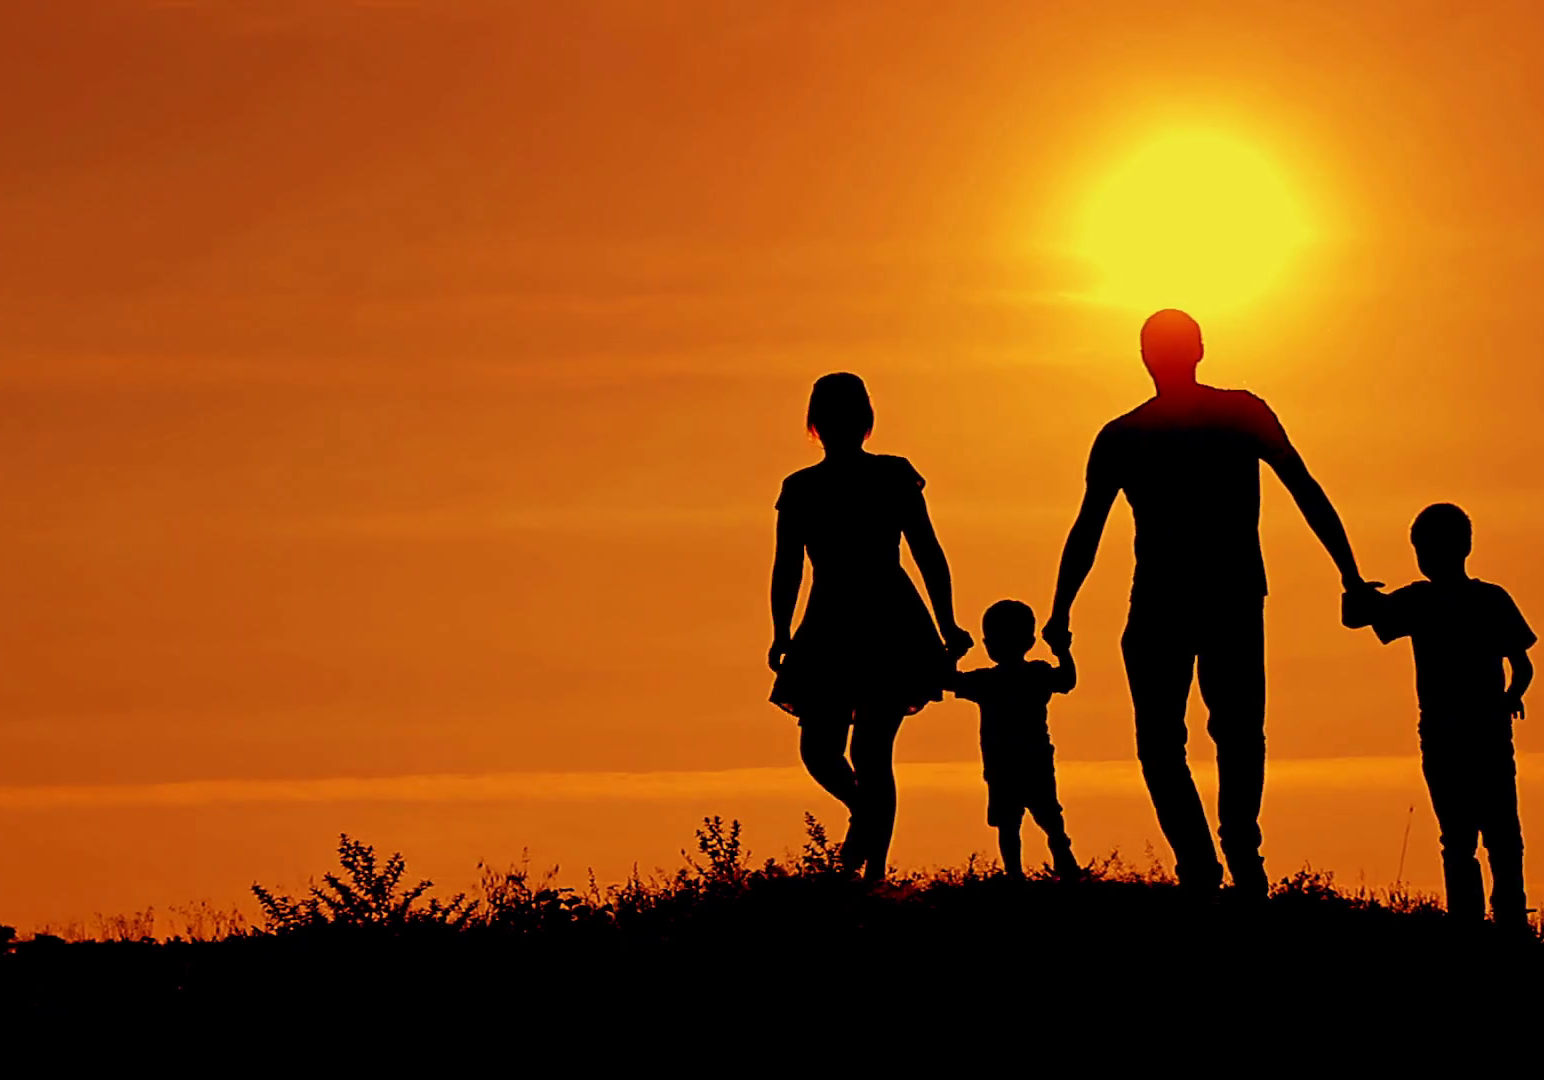 silhouettes-of-happy-family-running-on-a-sunset-background_rlp-dcr5_thumbnail-full01